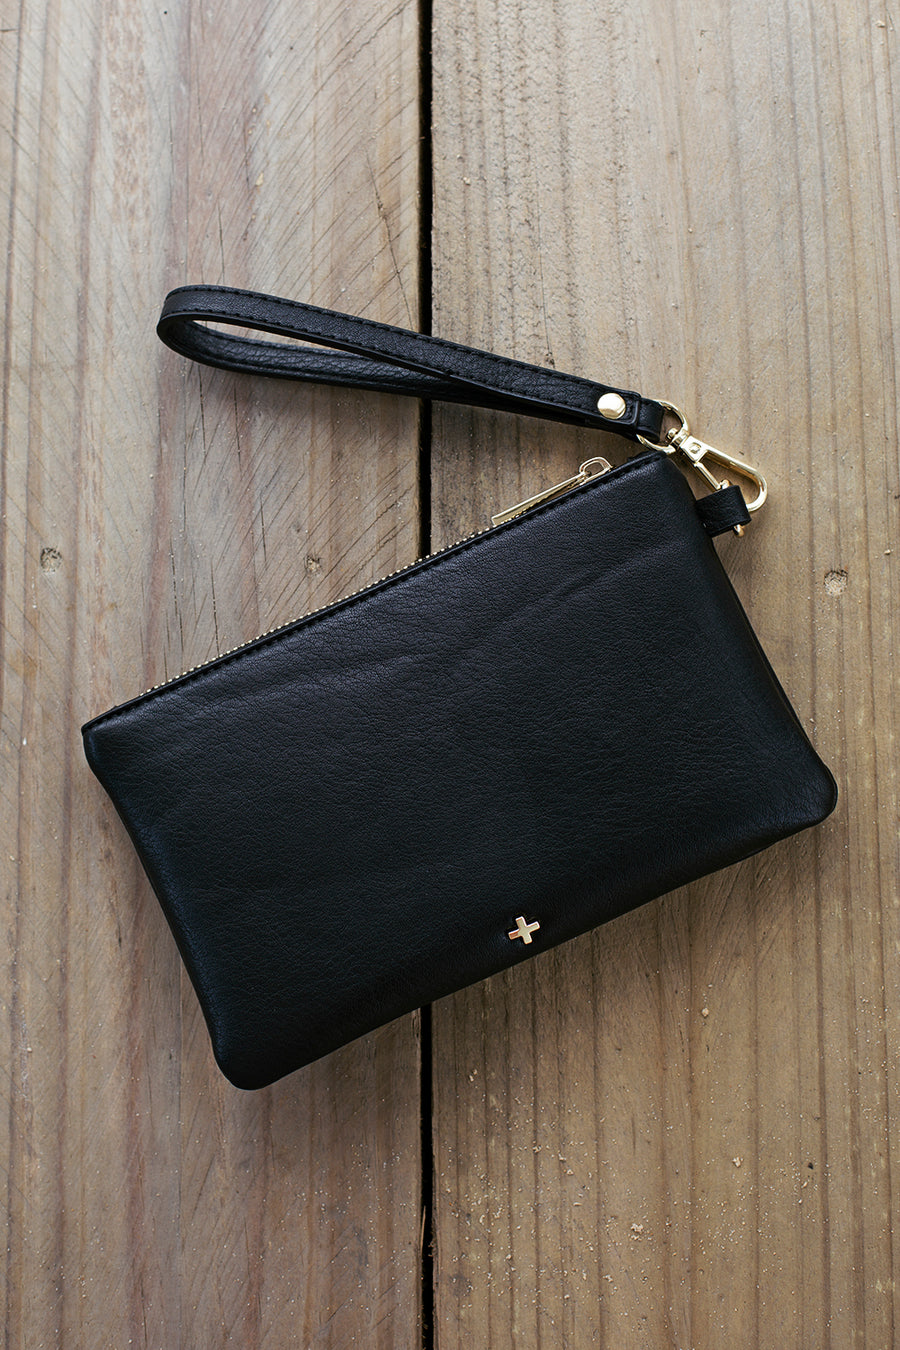 Bella Clutch in Black for $39.95